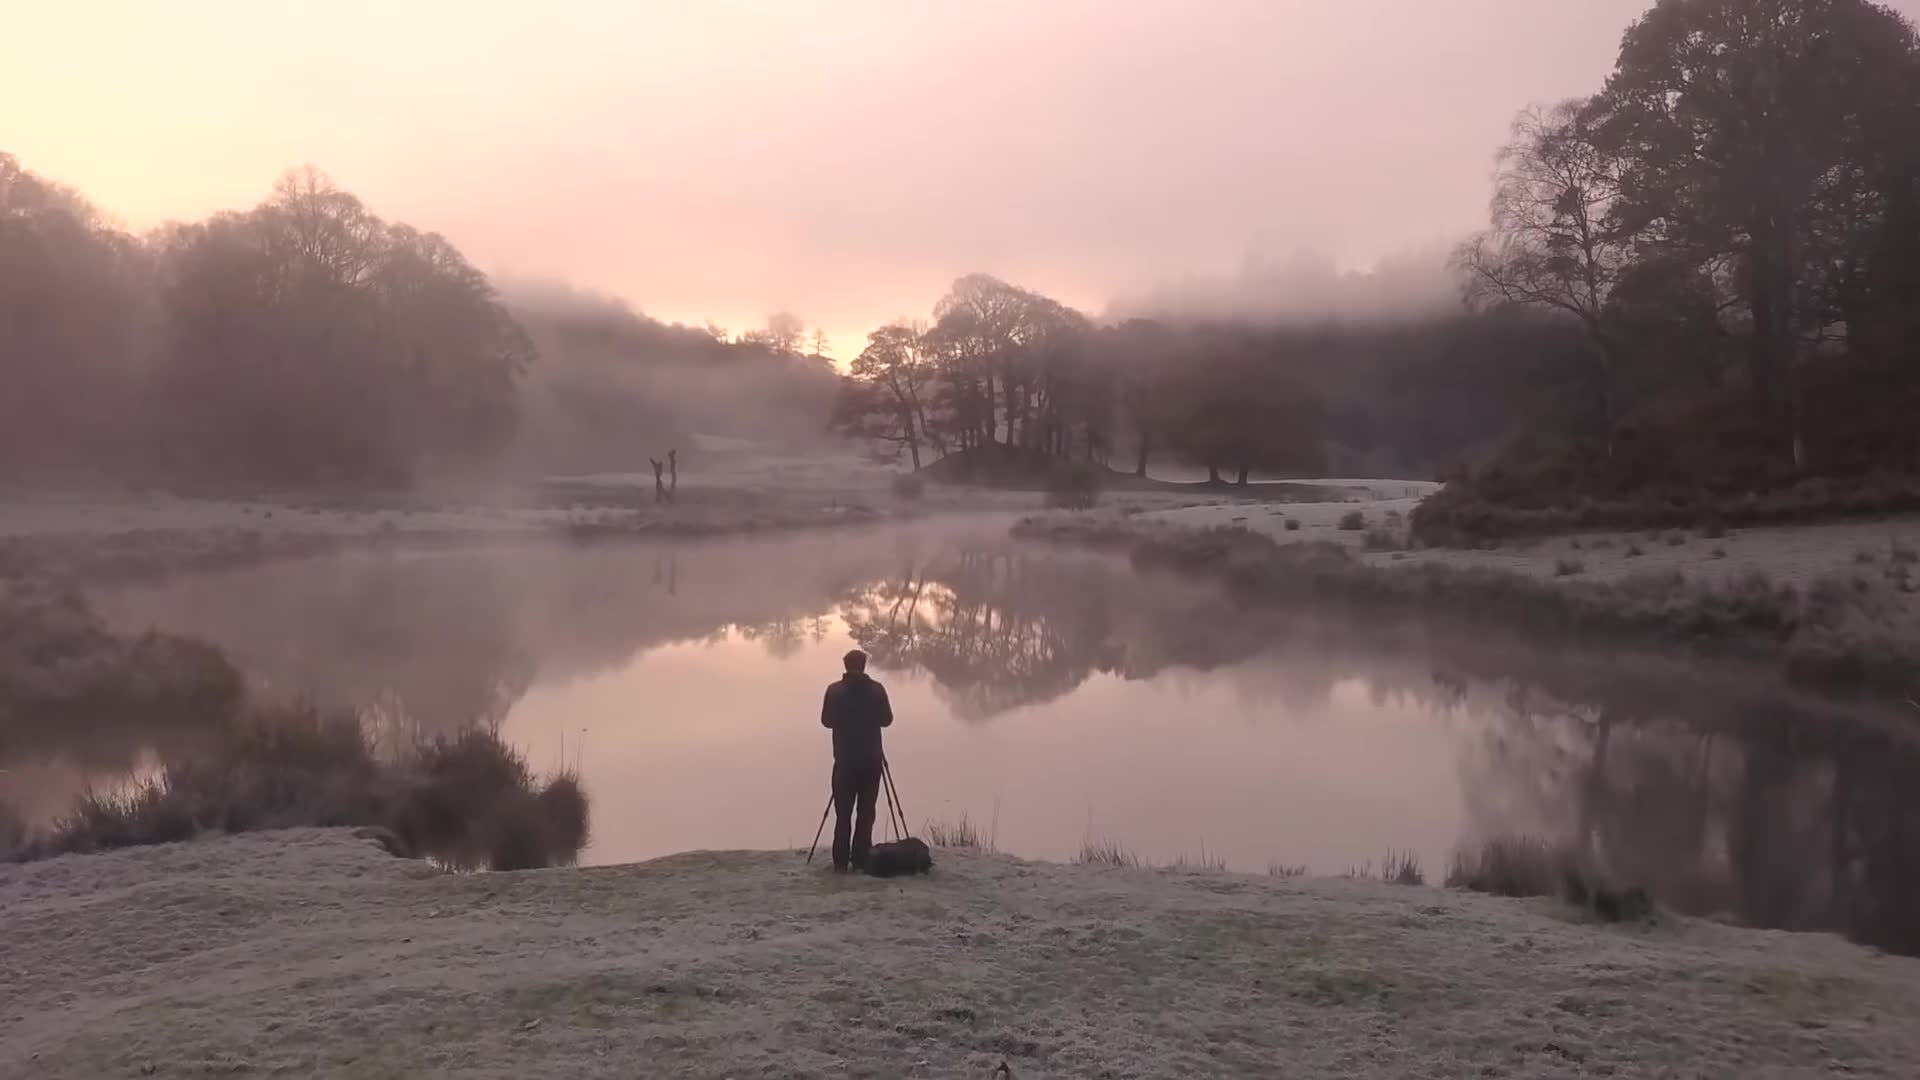 how to take better photos, landscape, landscape photography, landscape photography blog, landscape photography tips and techniques, landscape photography tutorial, nature, photography, photography tips, sunrise photography, sunrise photography tips, Fog in the Lake District | Nigel Danson GIFs